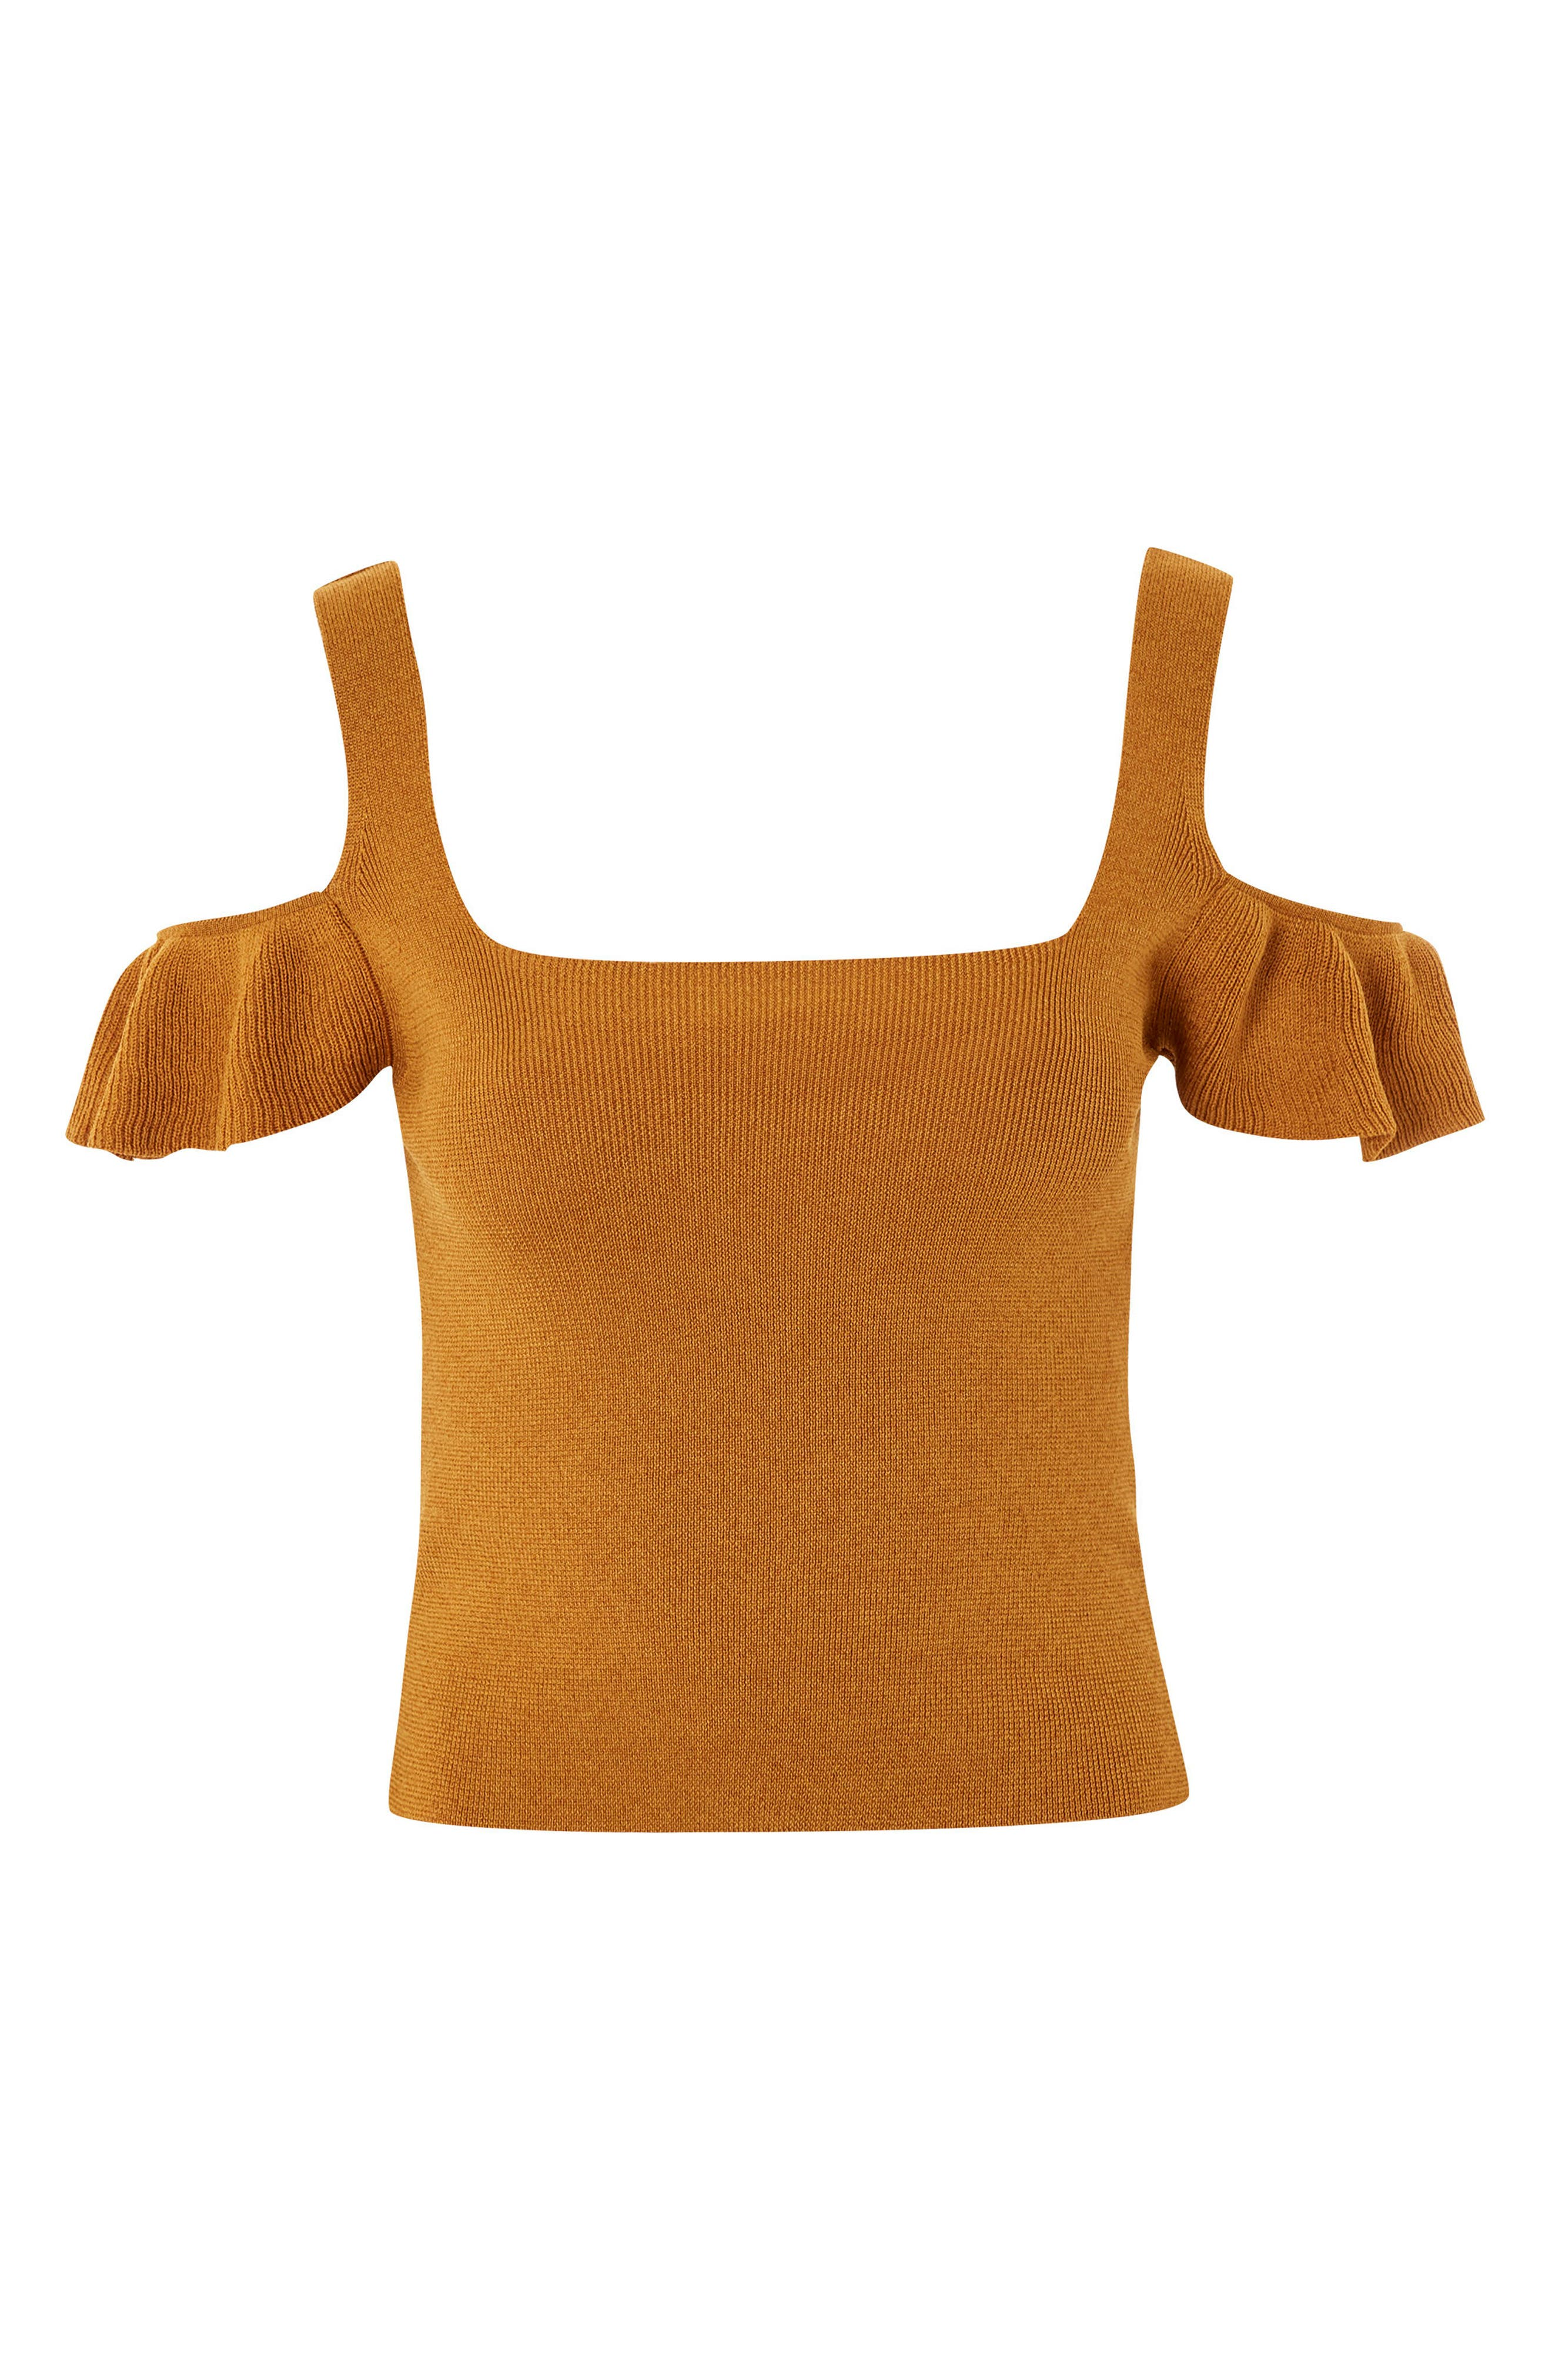 Ruffle Cold Shoulder Knit Top,                         Main,                         color, Mustard